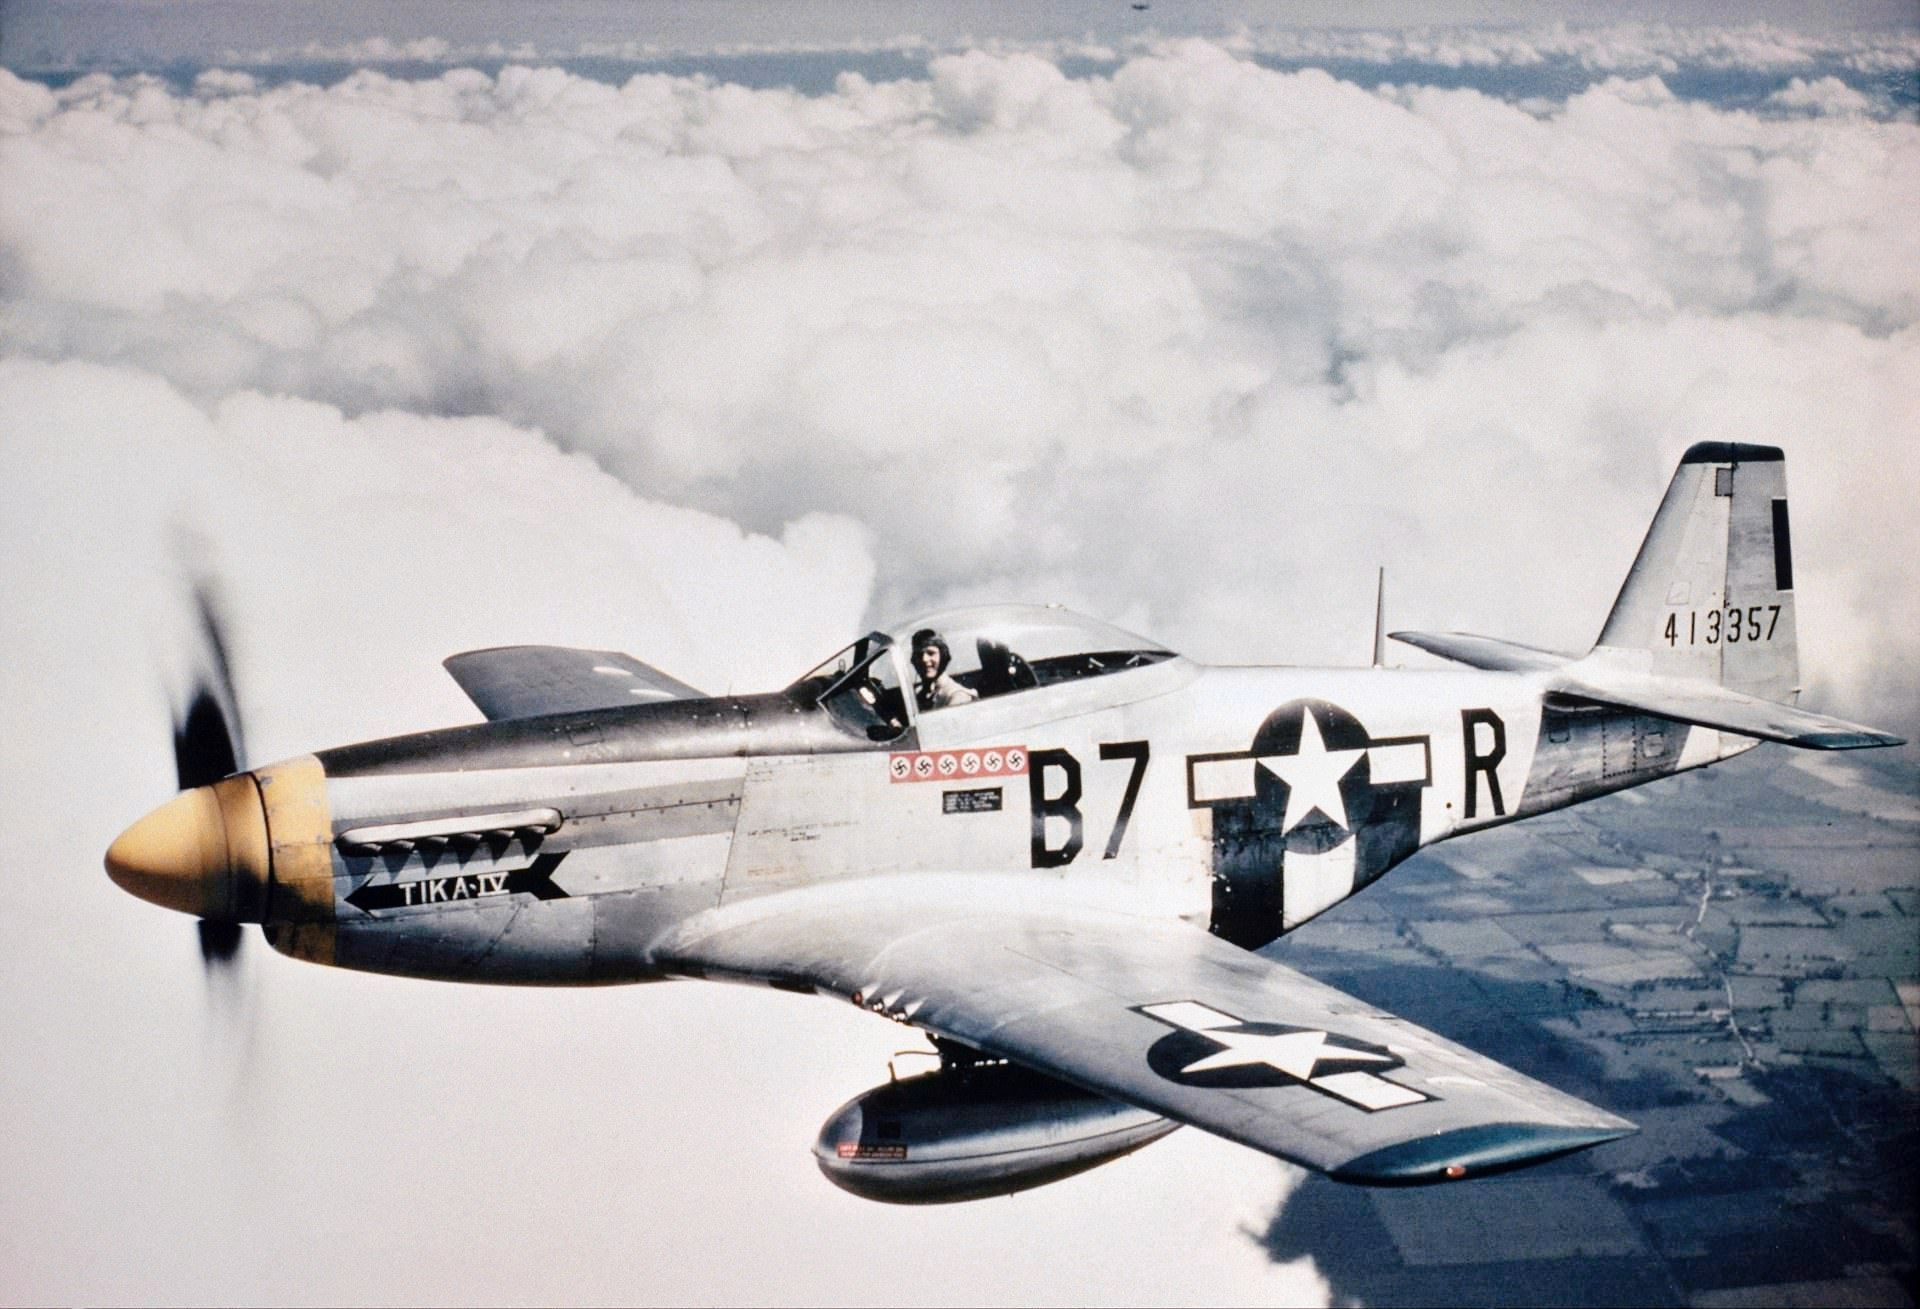 North American P-51 Mustang - Wikipedia, the free encyclopedia